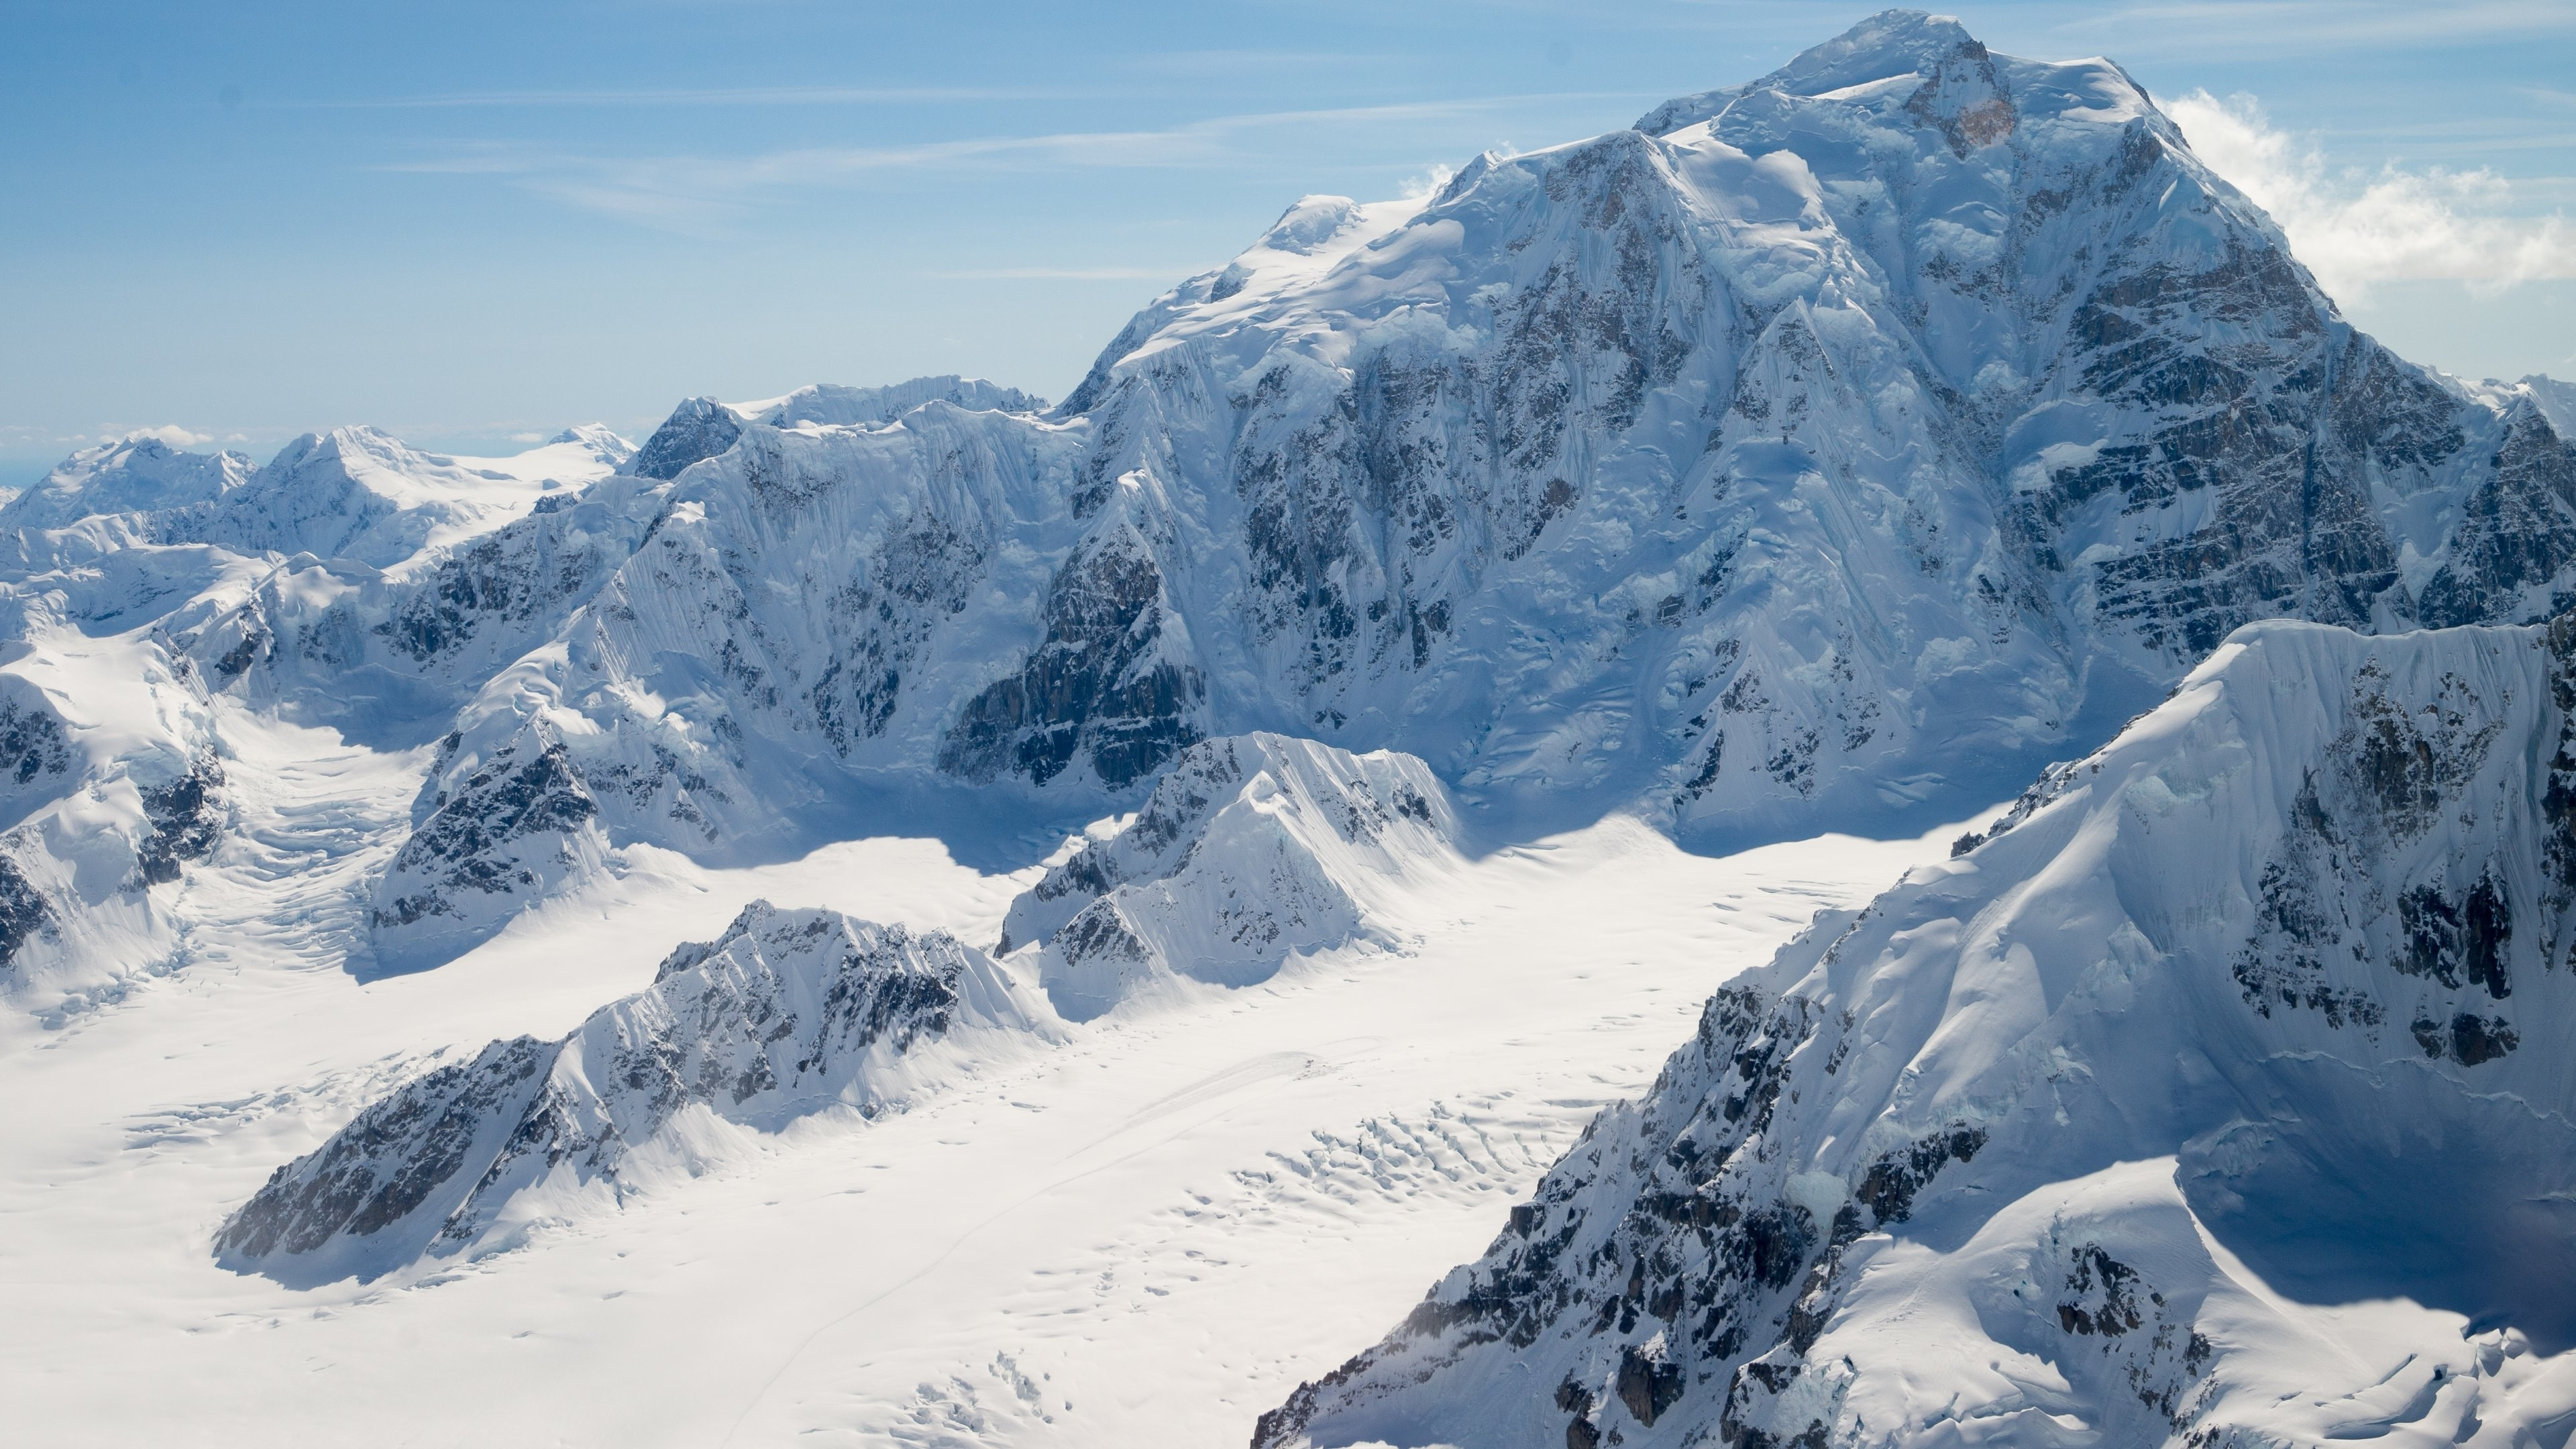 Snow mountains wallpaper 76 images - Snowy wallpaper ...